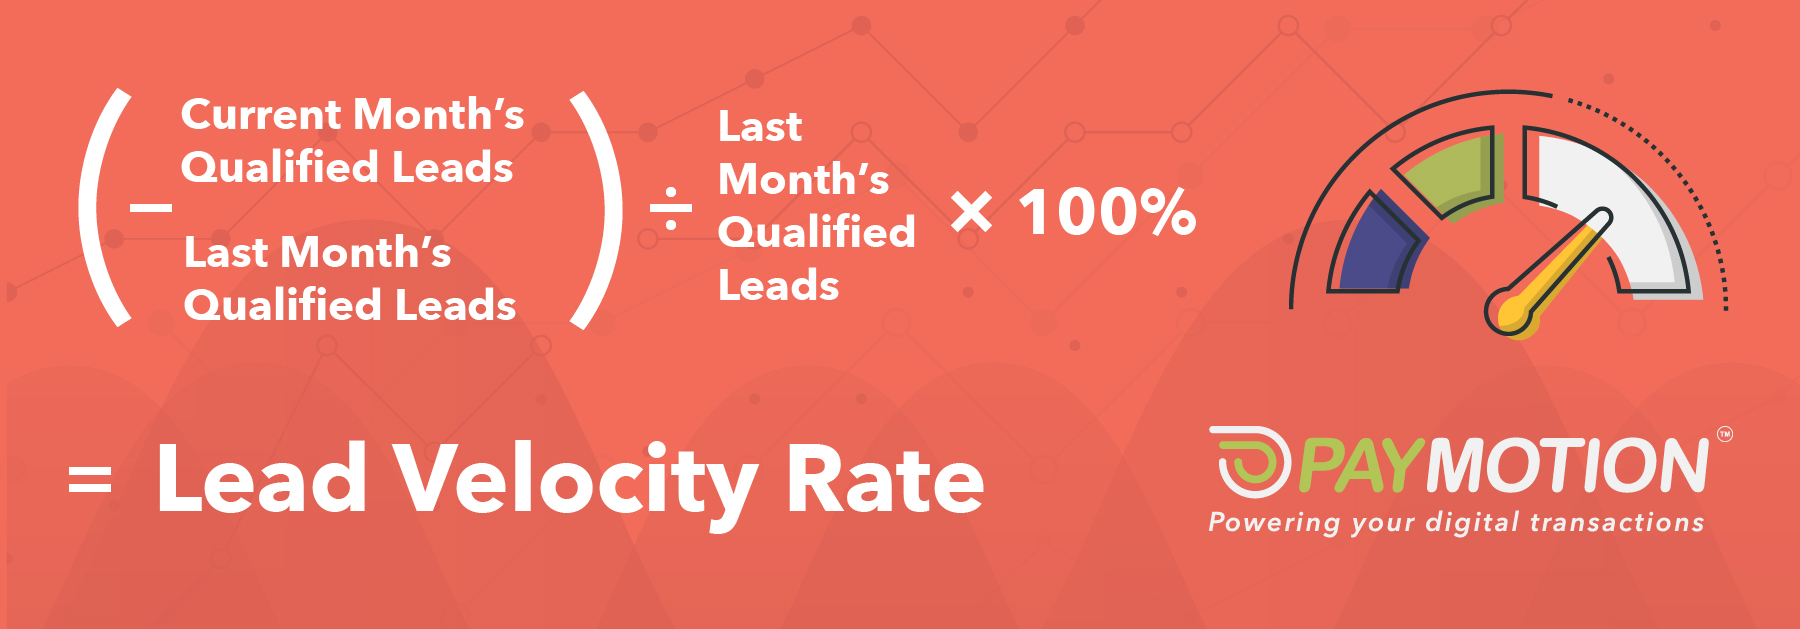 PayMotion, Lead Velocity Rate Calculation image